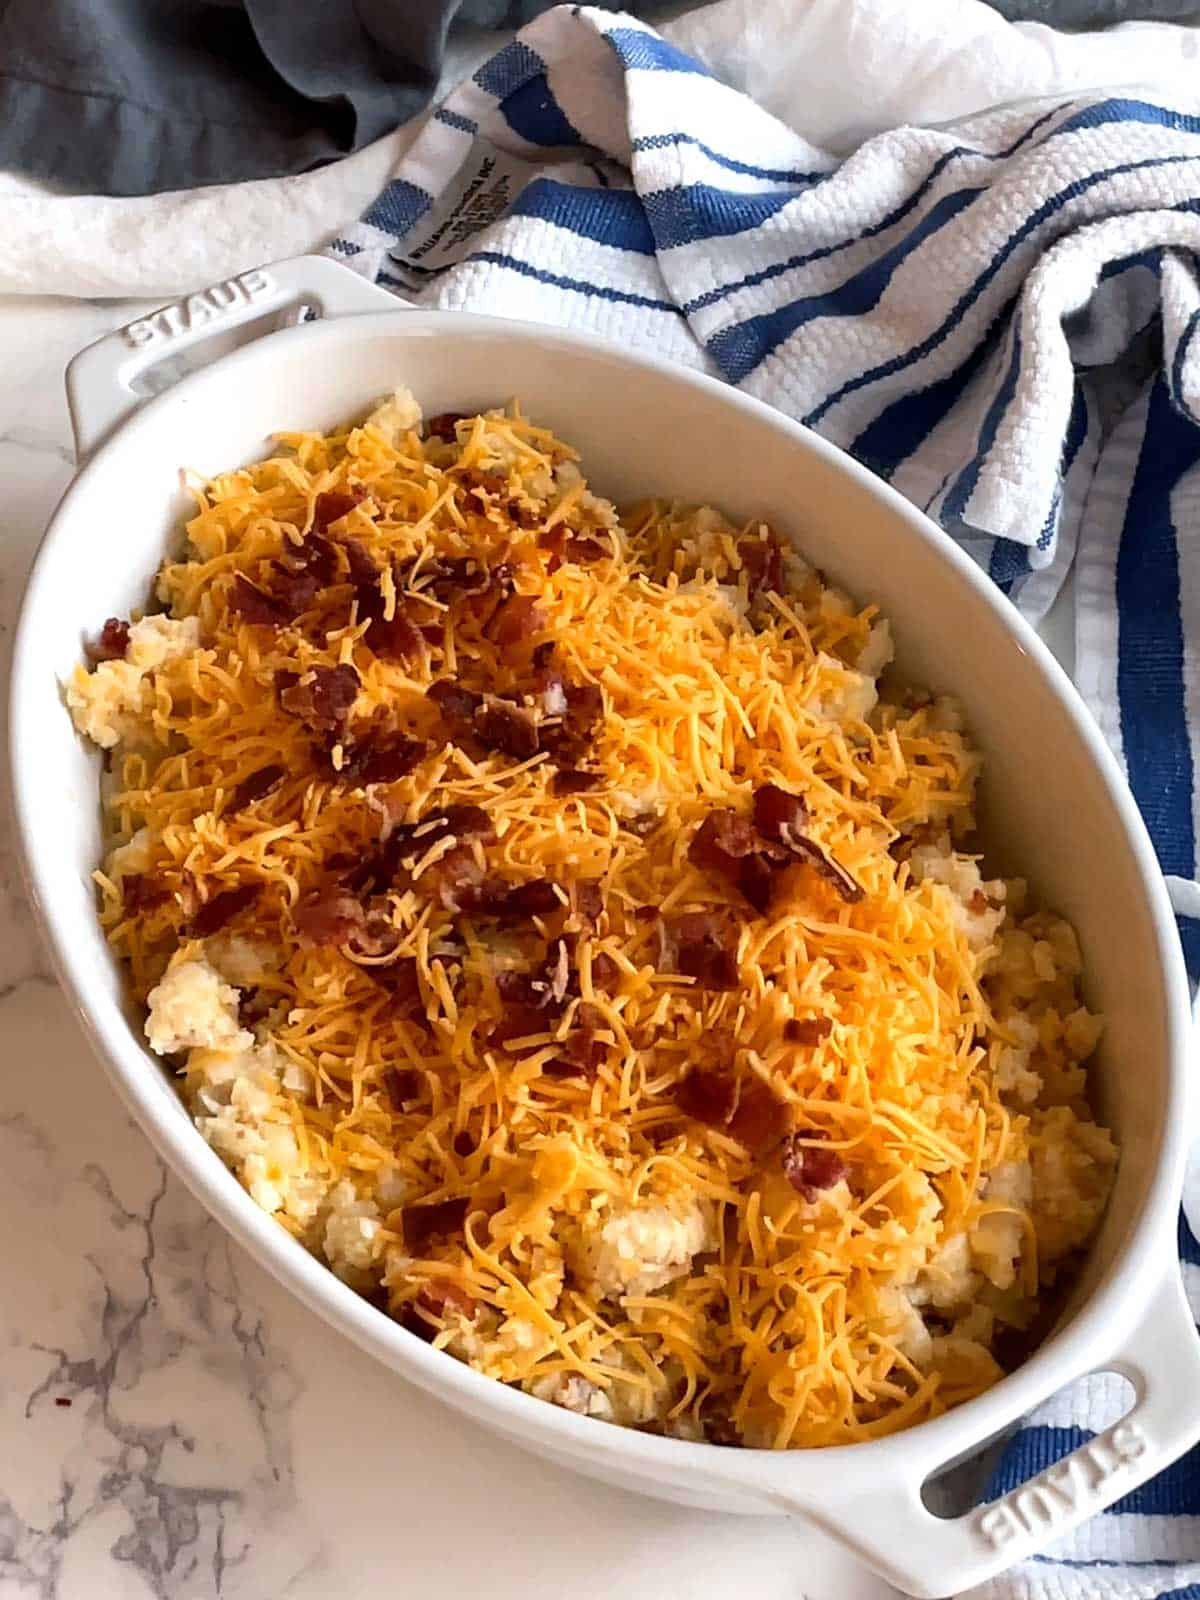 Sprinkling cheese and bacon on casserole.